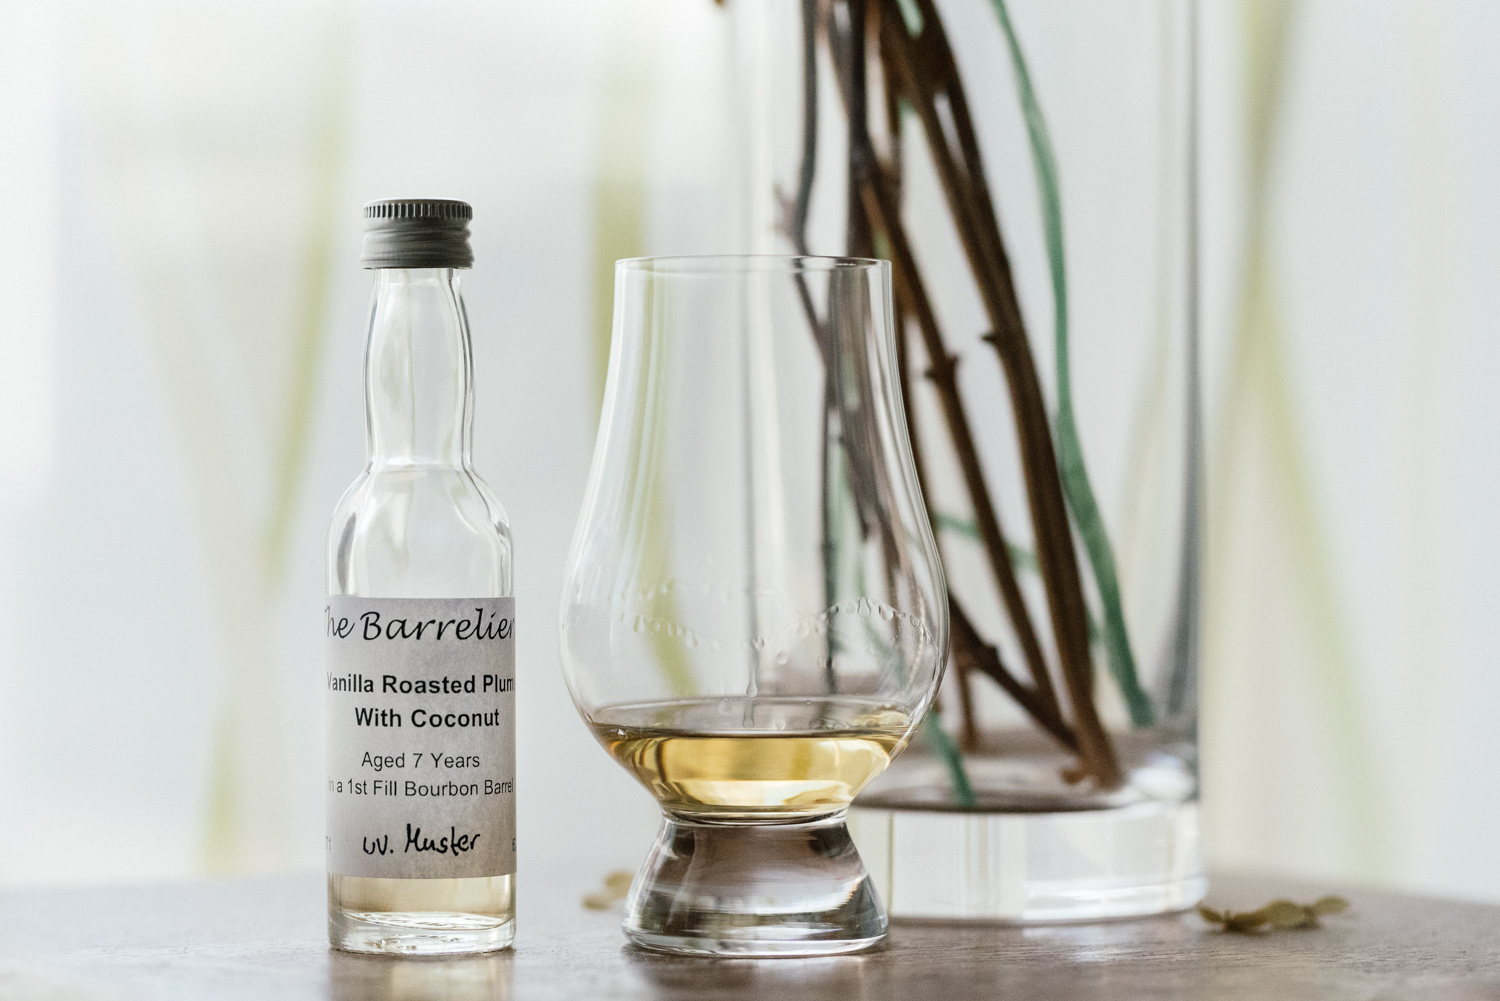 You are currently viewing Vanilla Roasted Plums With Coconut 7J-2011/2019 | The Barreliers